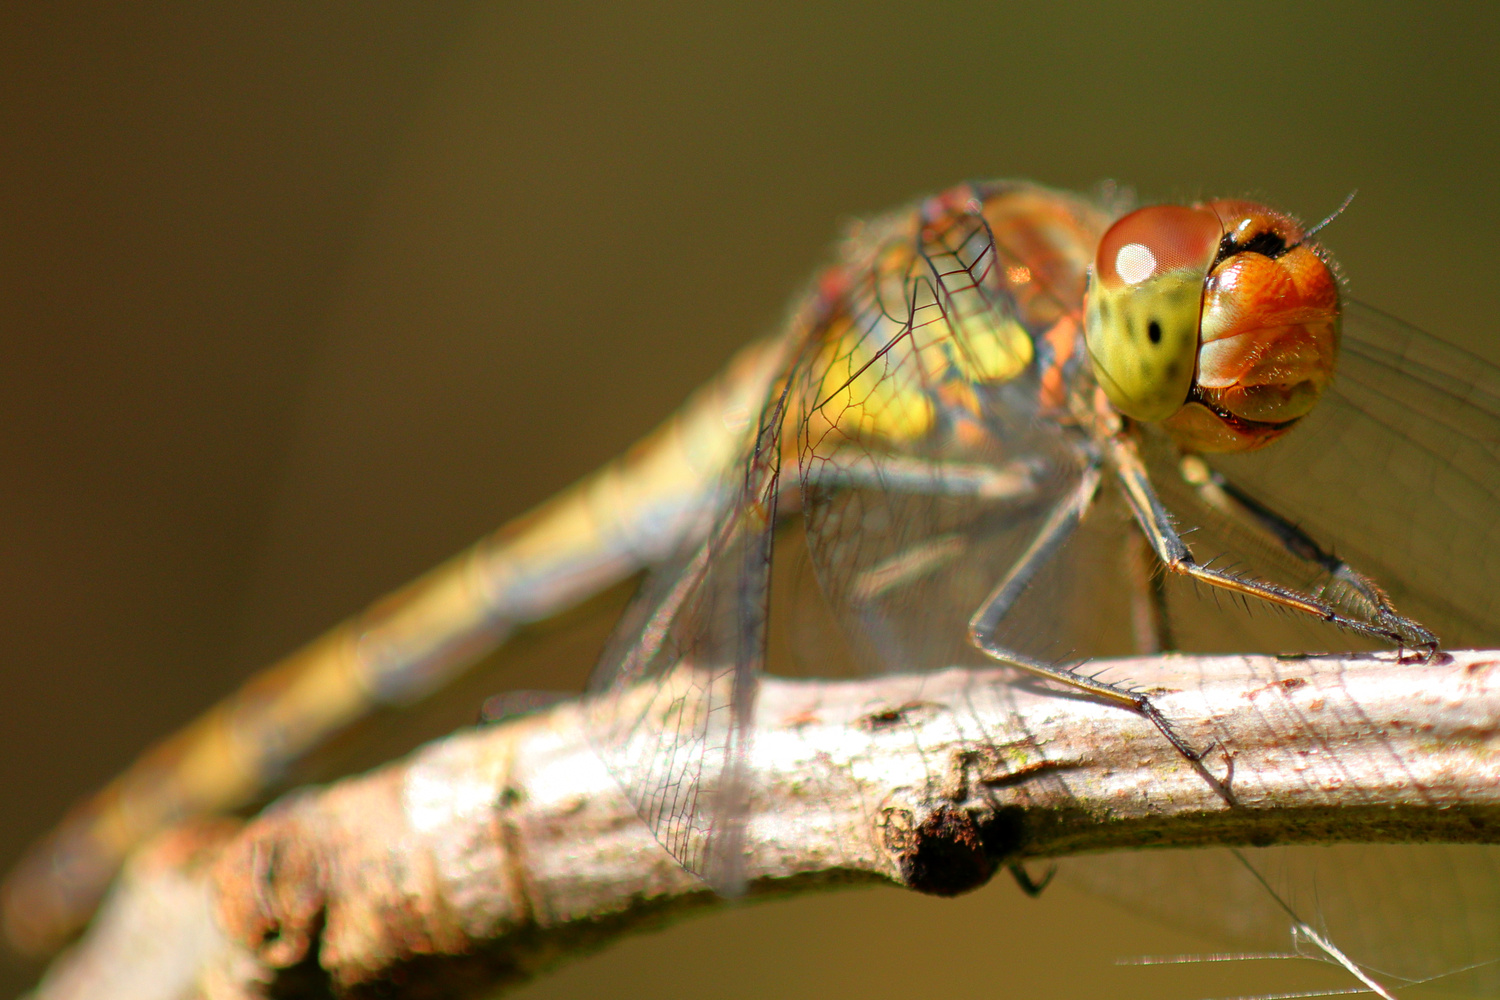 Dragonfly on a stick by Ian Luyten